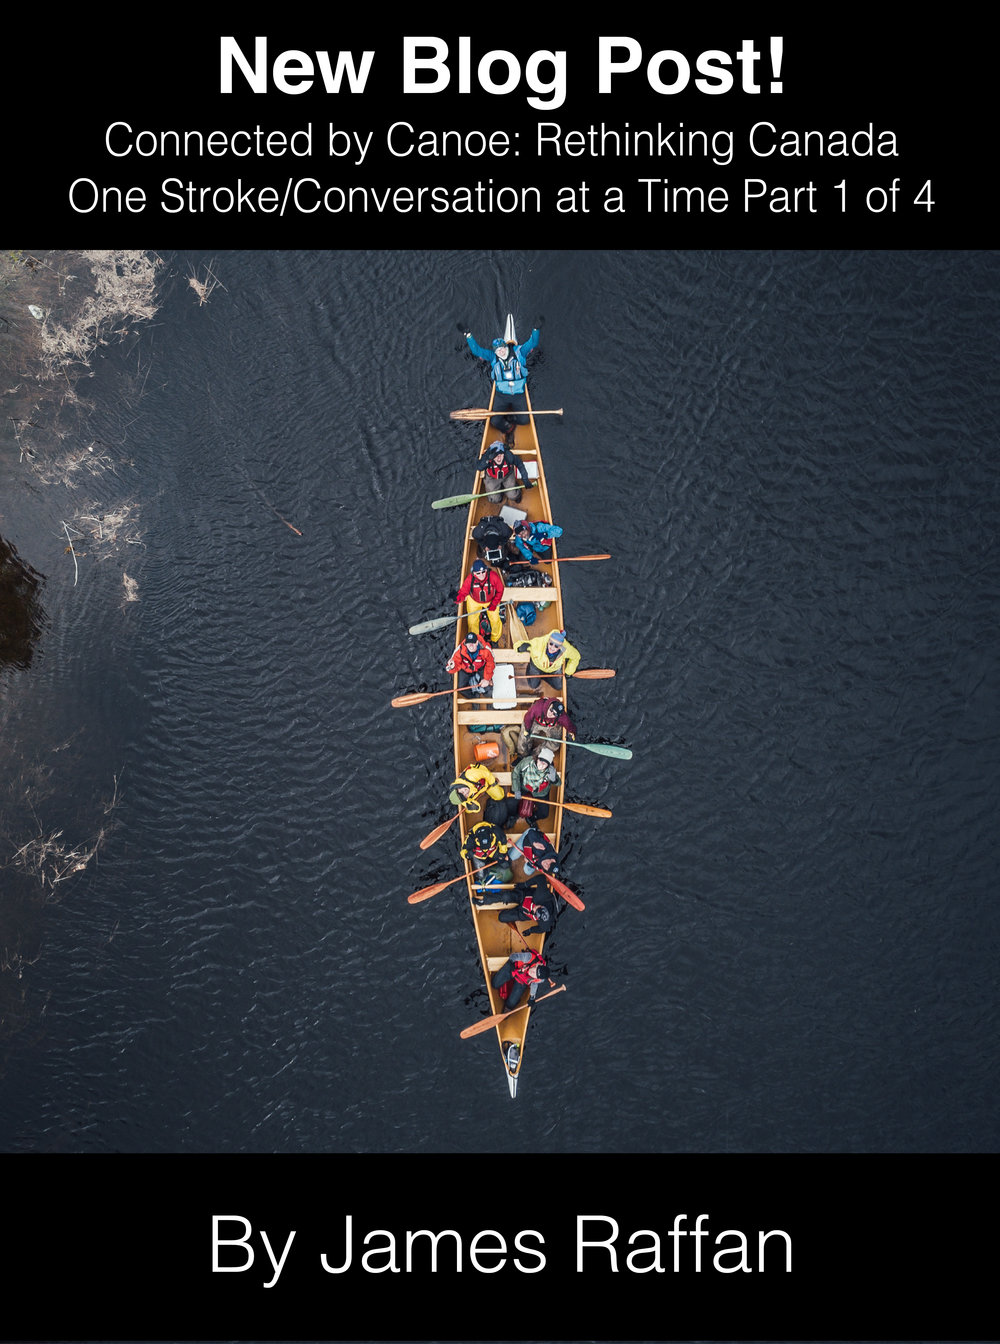 http://www.canoemuseum.ca/blog/2017/6/2/connected-by-canoe-part-1-of-4